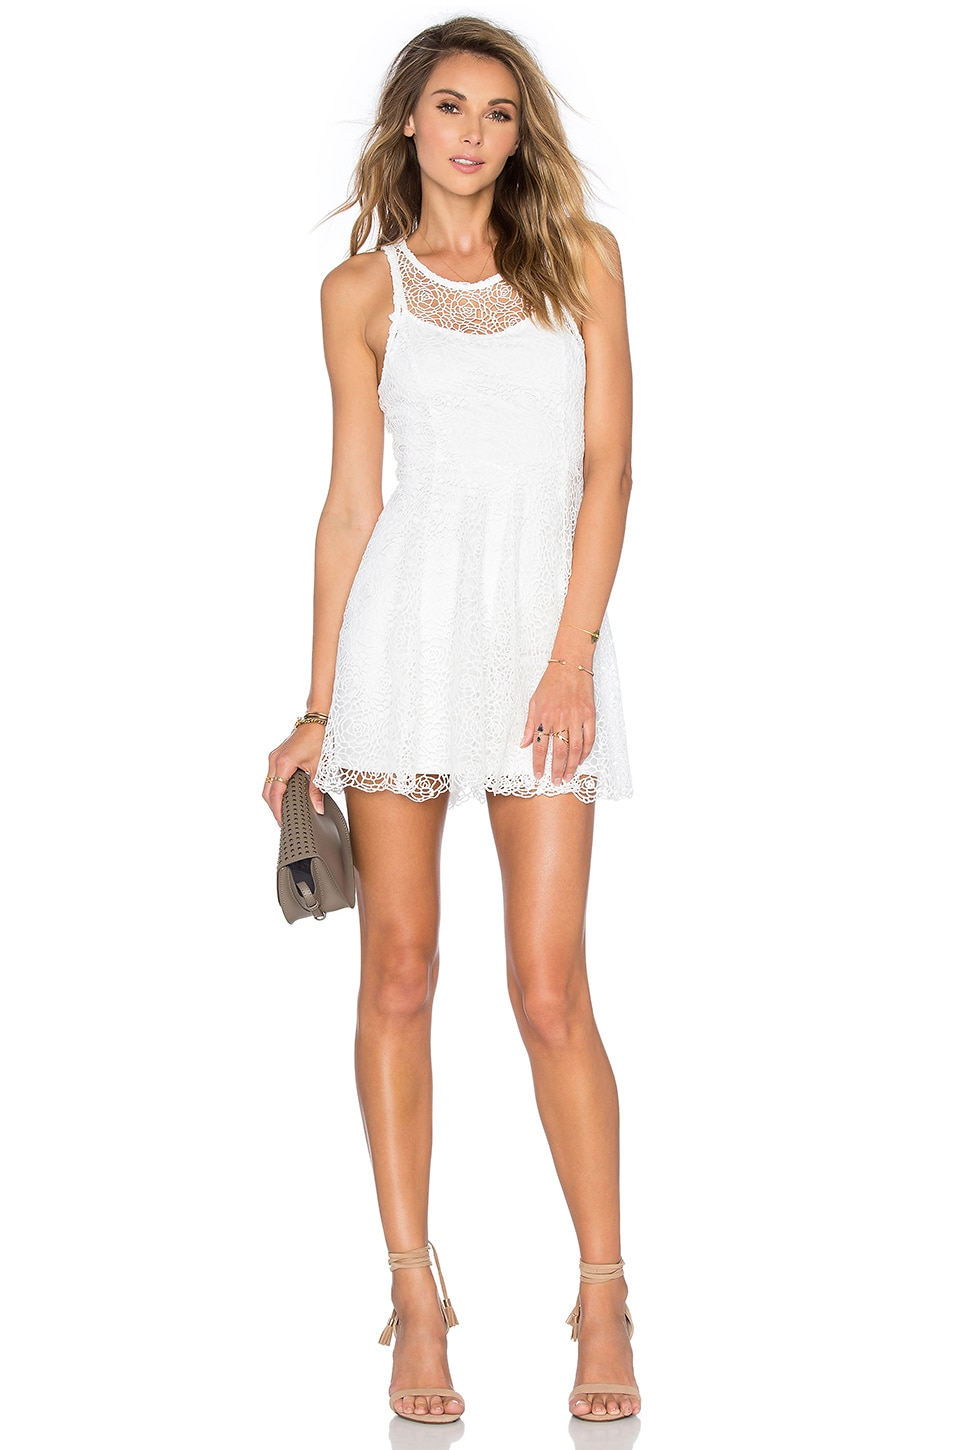 x REVOLVE Solitude Bliss Dress by NBD